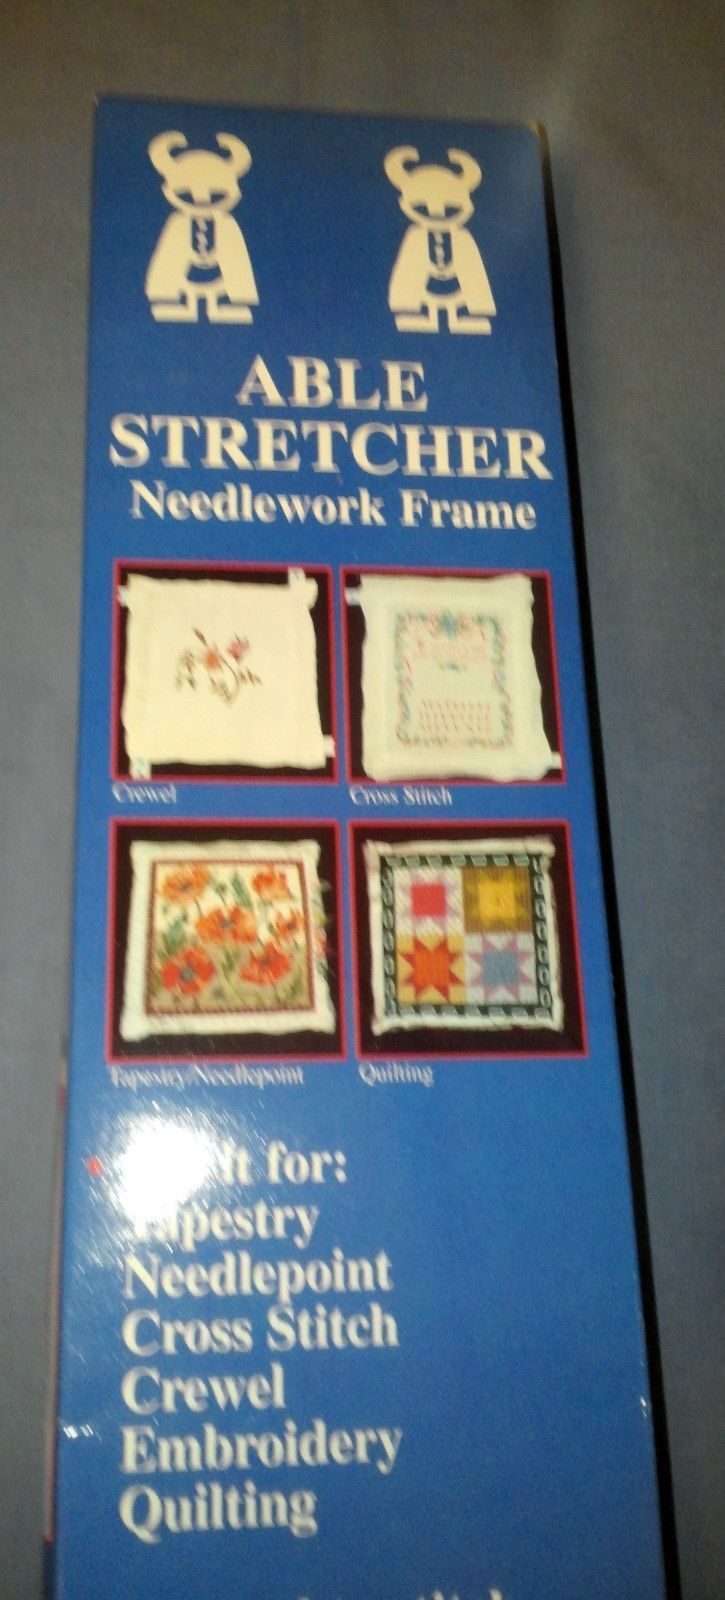 Able Stretcher Needlework Frame with Clips by Viking Loom | Products